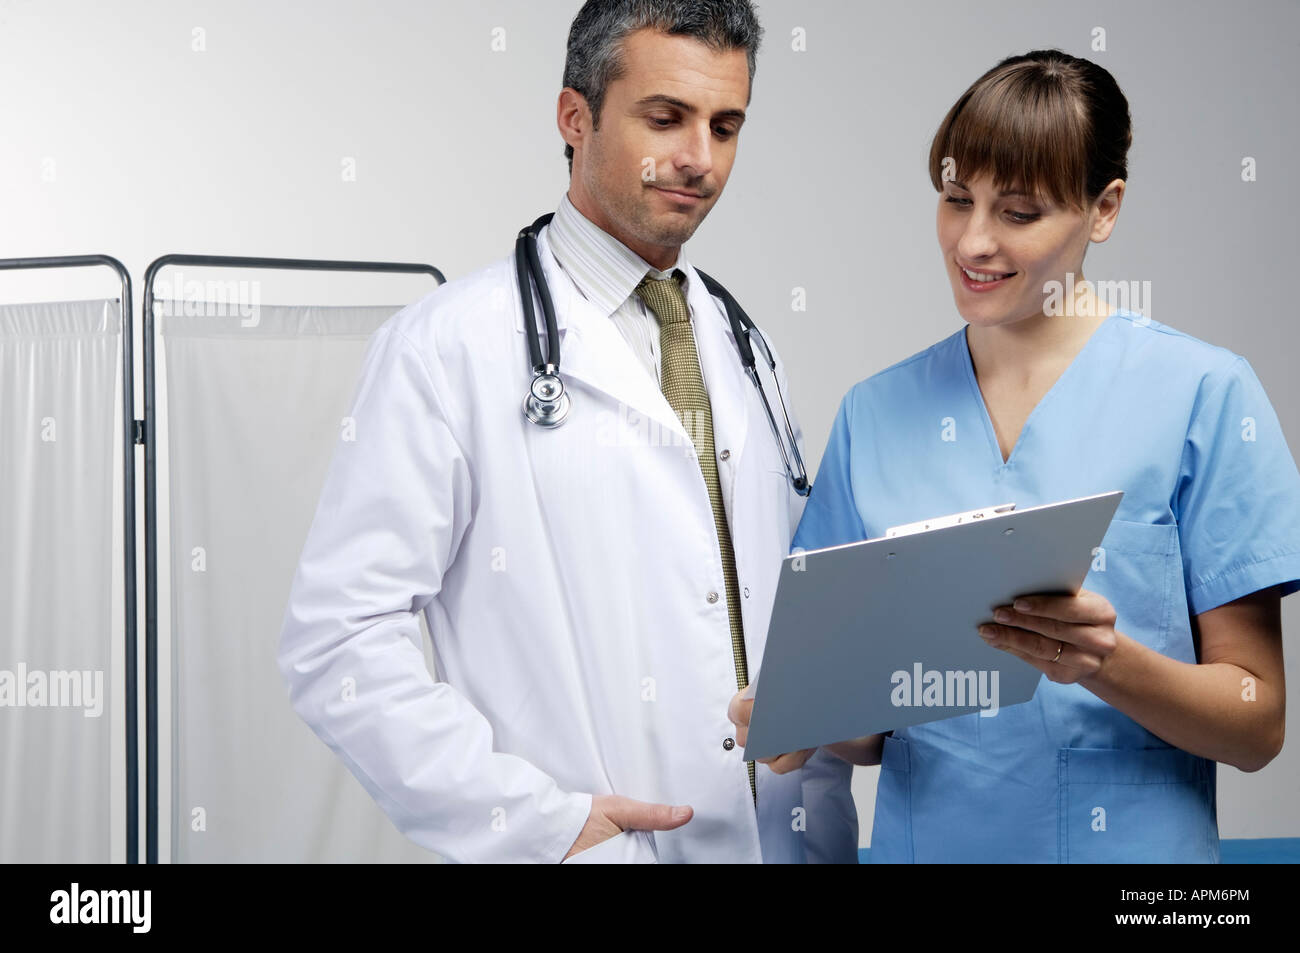 Male and female doctors - Stock Image